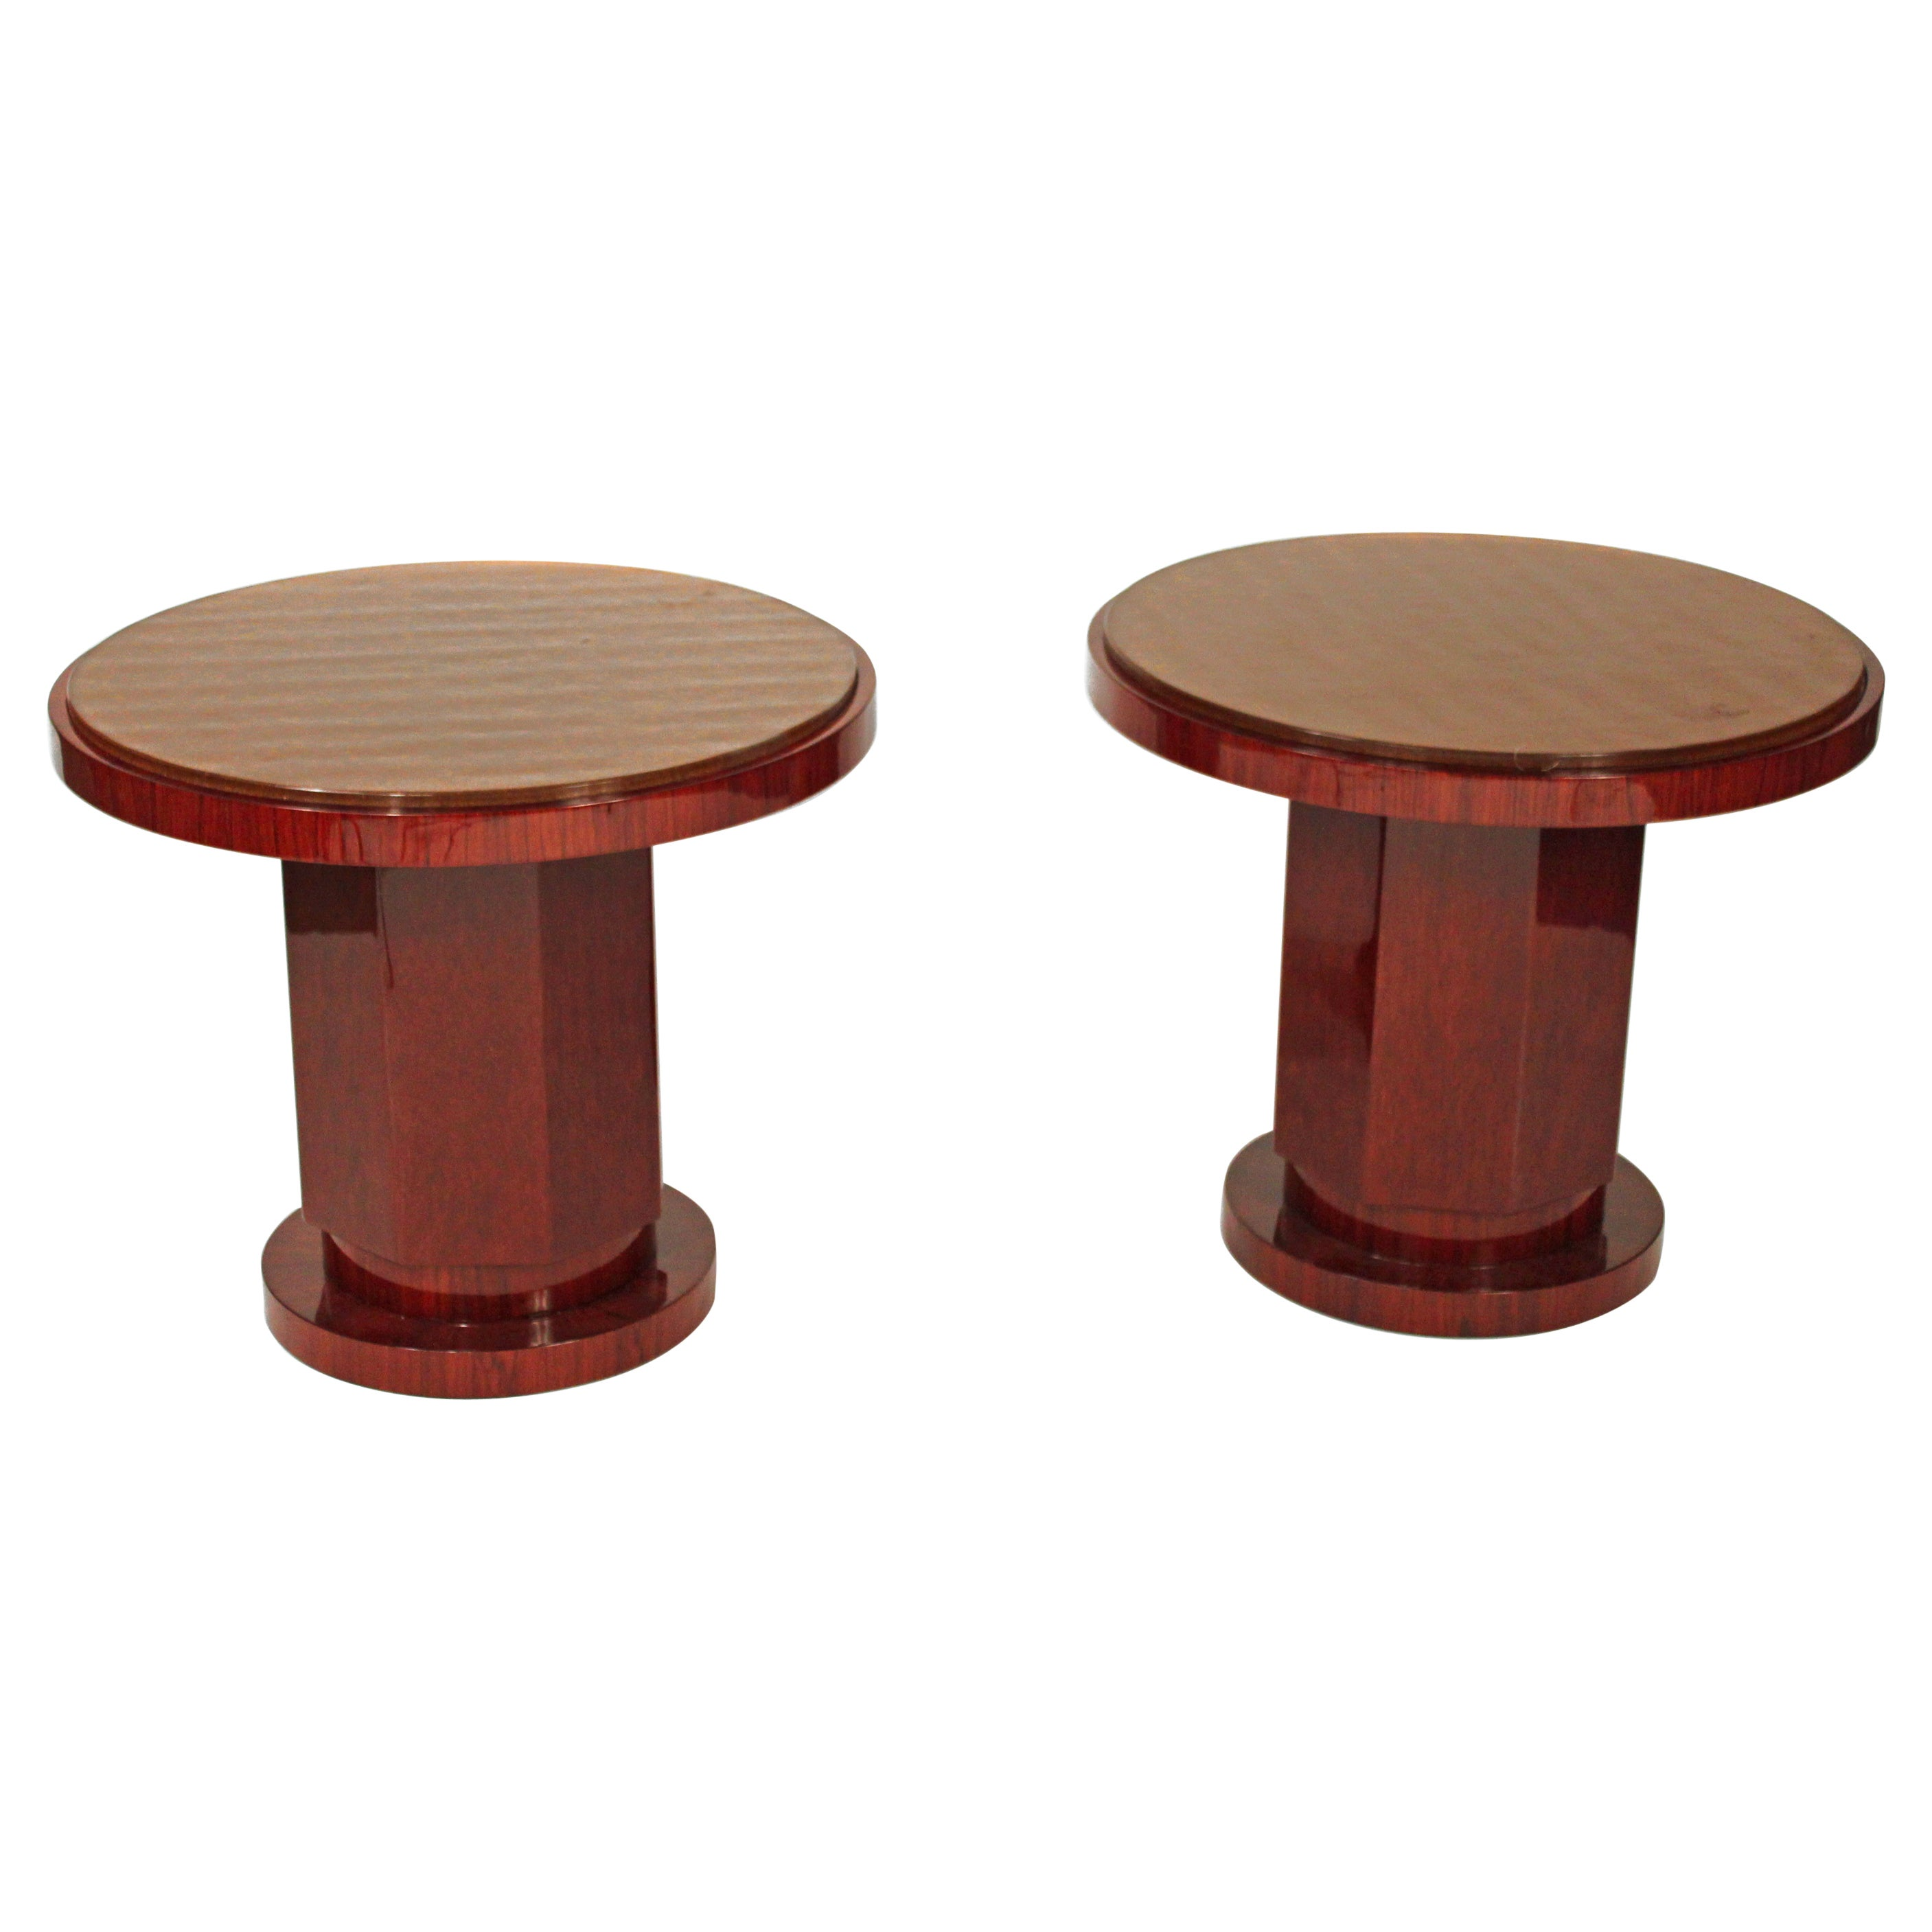 Pair of Art Deco Style Side Table